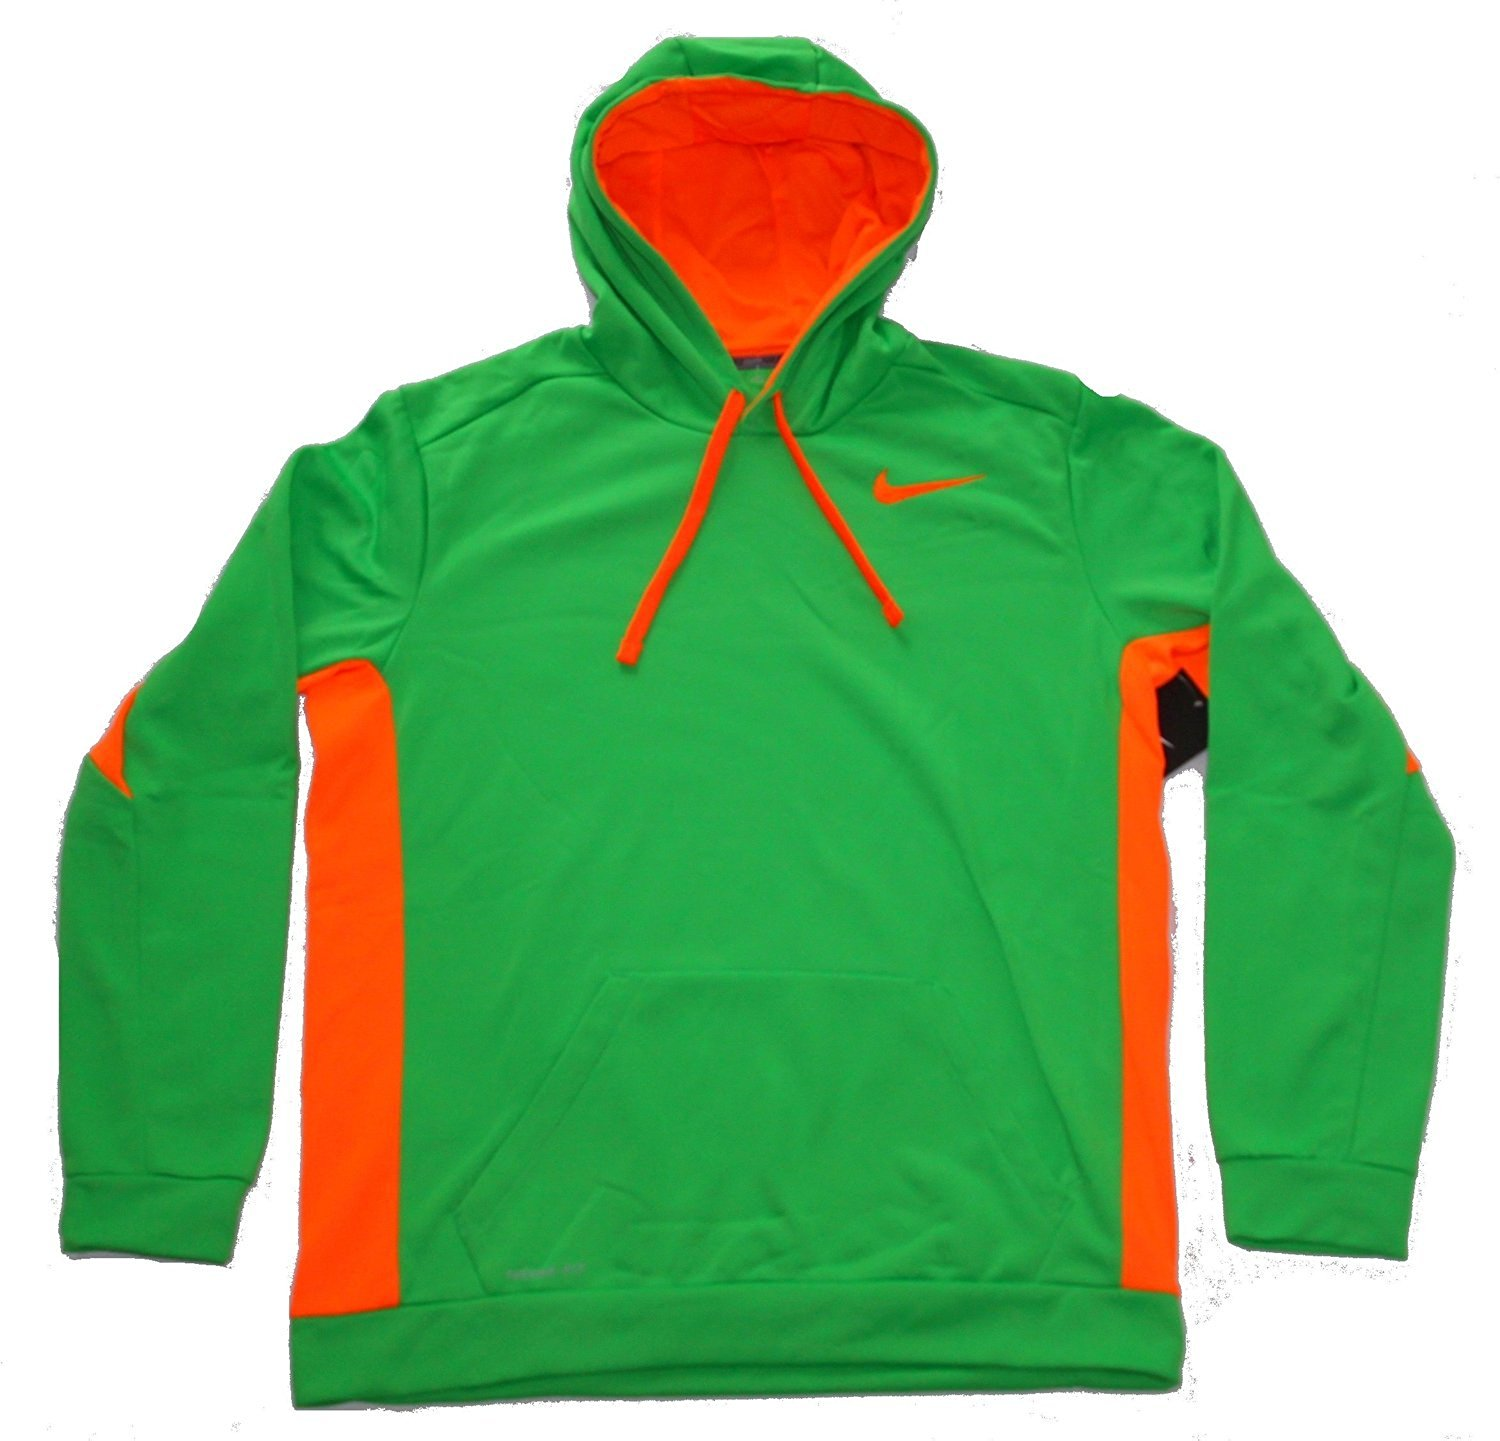 a6837f70abf9 Get Quotations · Nike Mens Therma Fit KO 3.0 Pullover Hoodie Sweatshirt  Green Orange XS